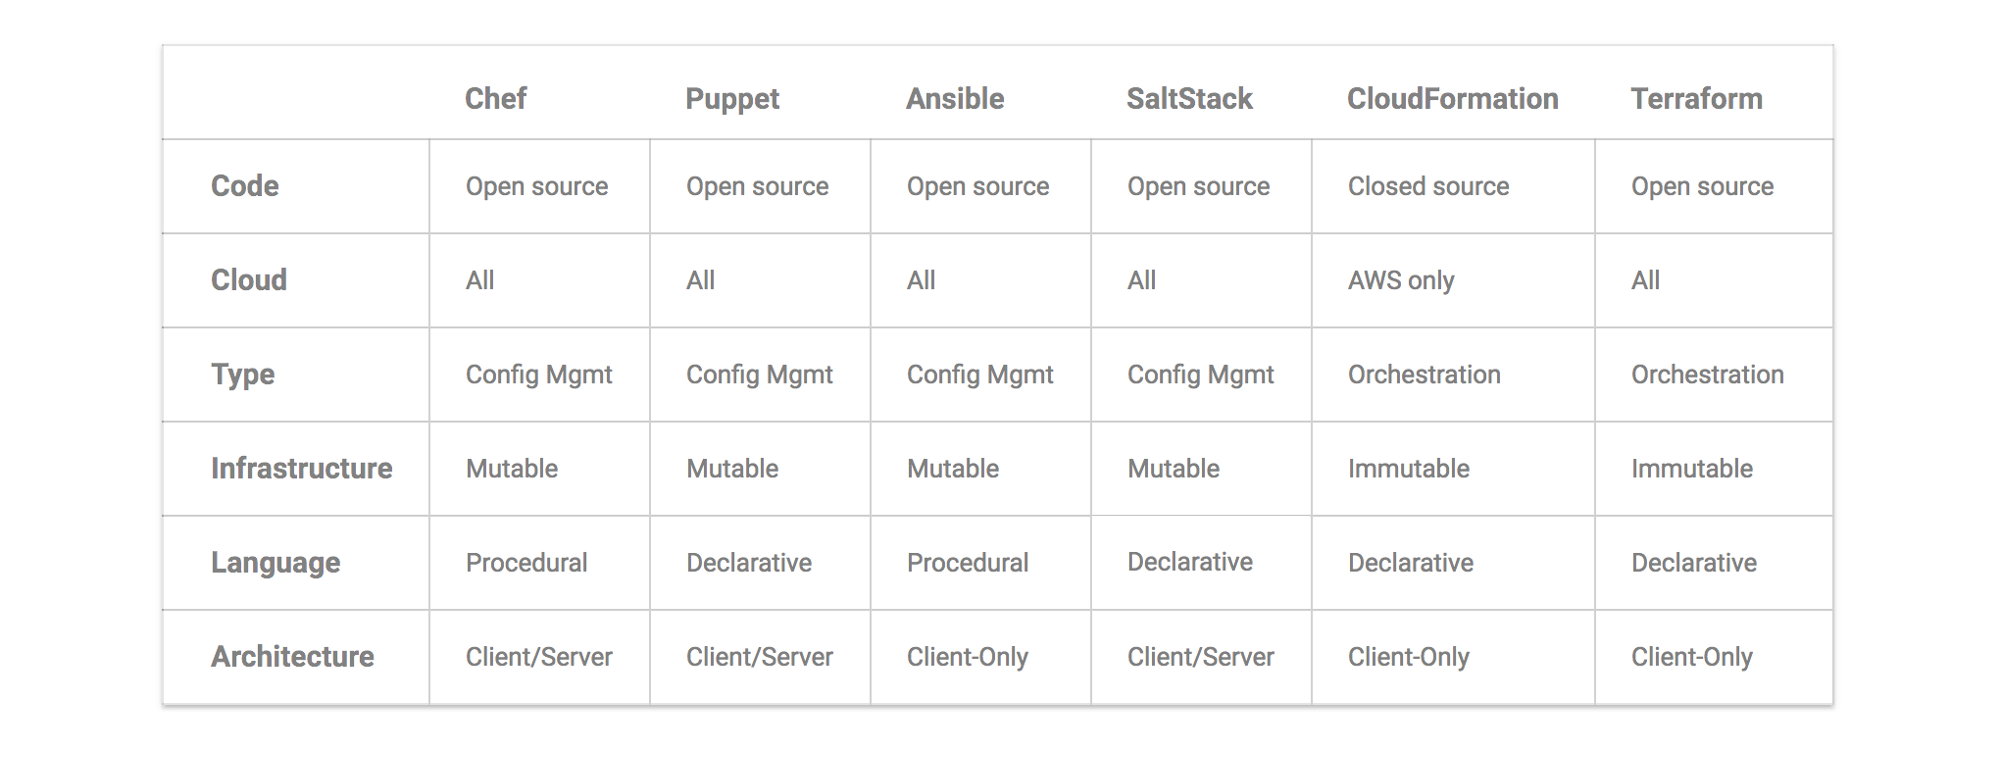 Table Comparison Ansible, Chef, Puppet, SaltStack, CloudFormation and Terraform